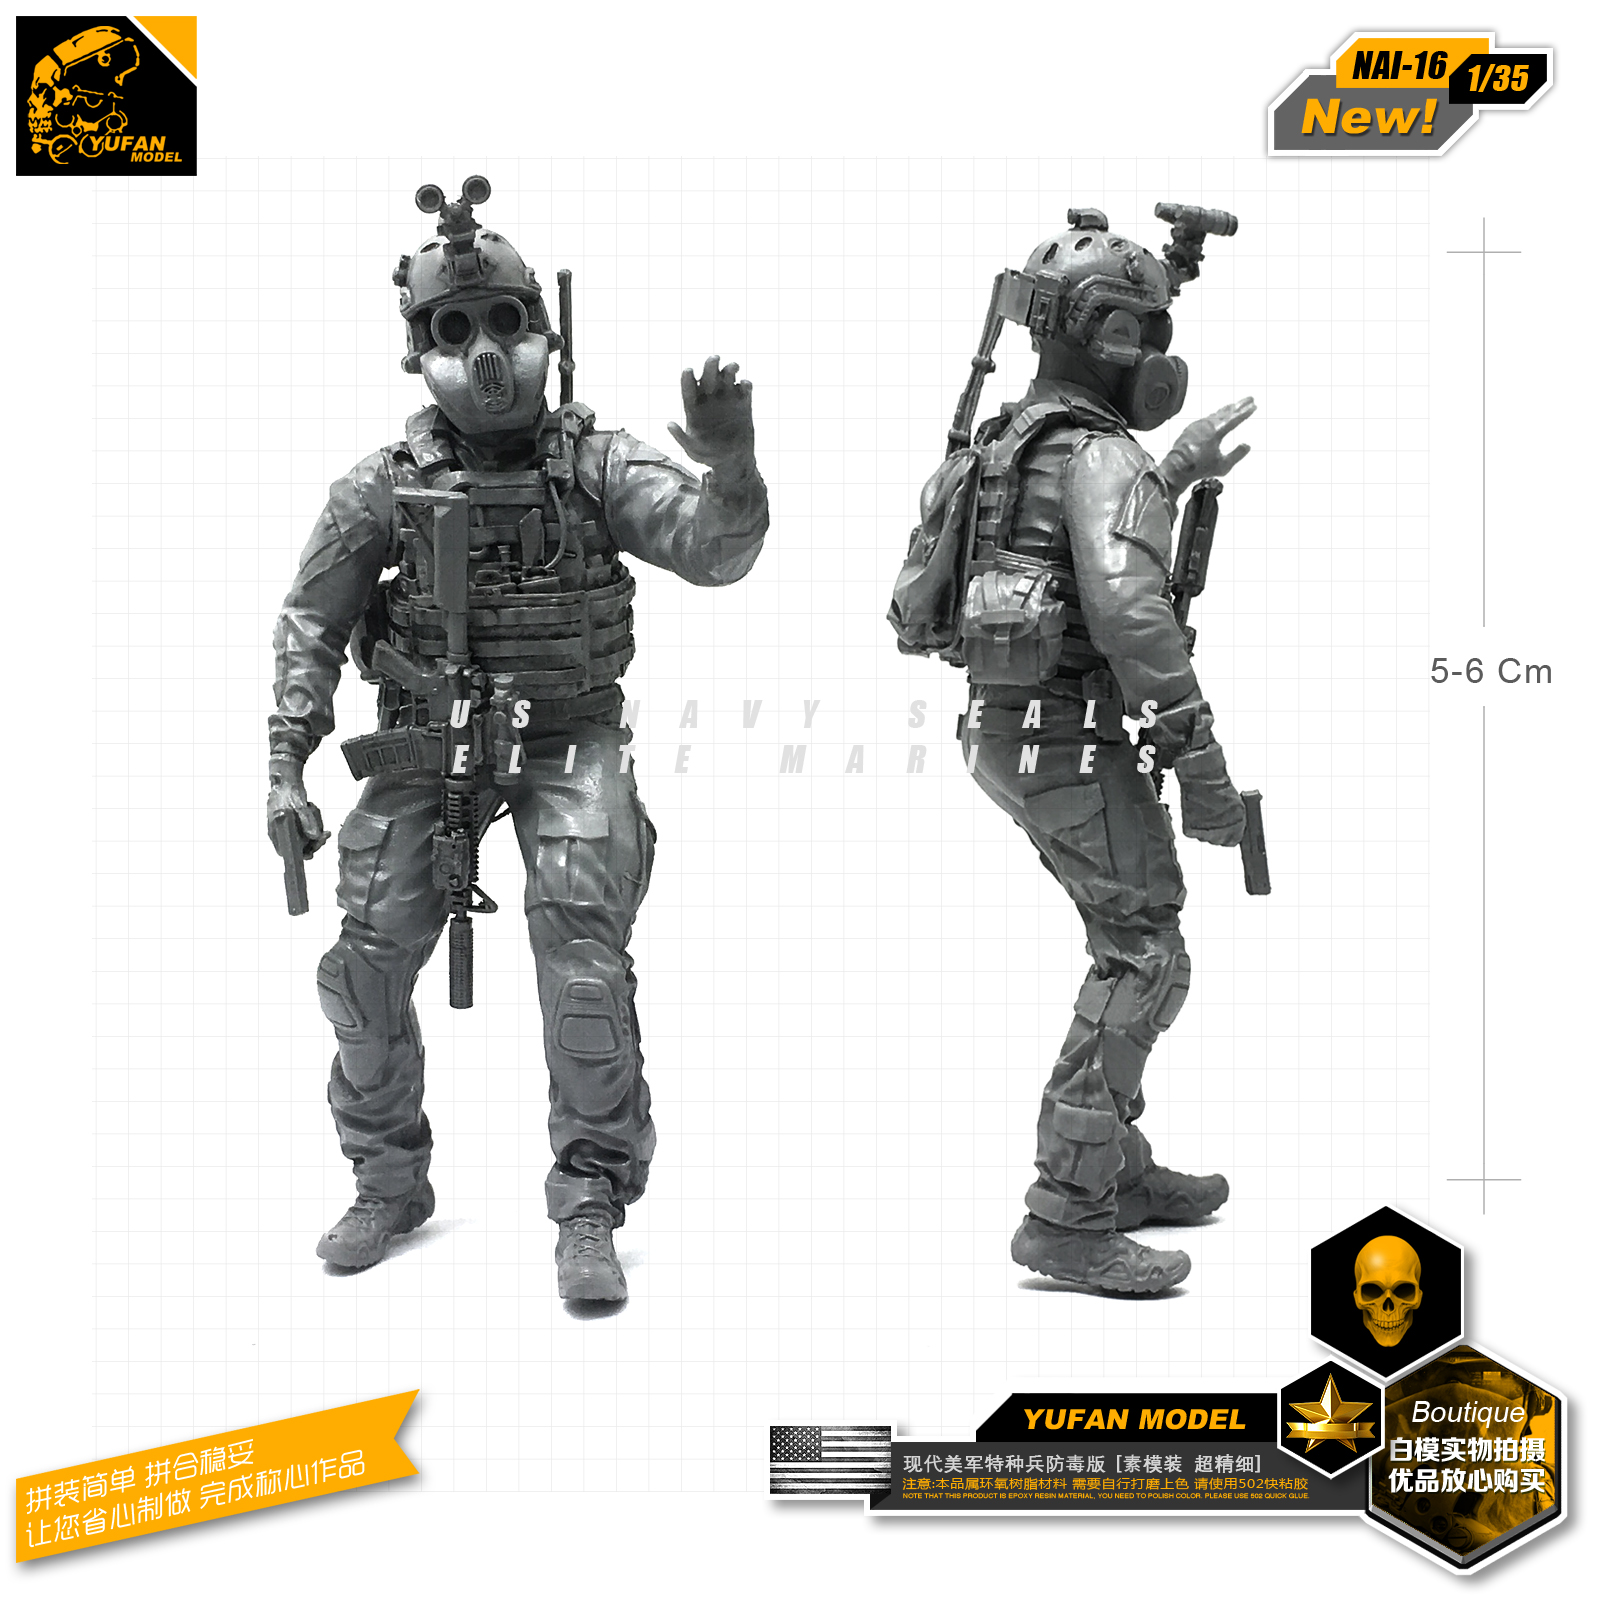 1/35 The Air Mask Version Of The Resin Soldier Model Nai16 For Modern U.s. Army Special Forces Mild And Mellow